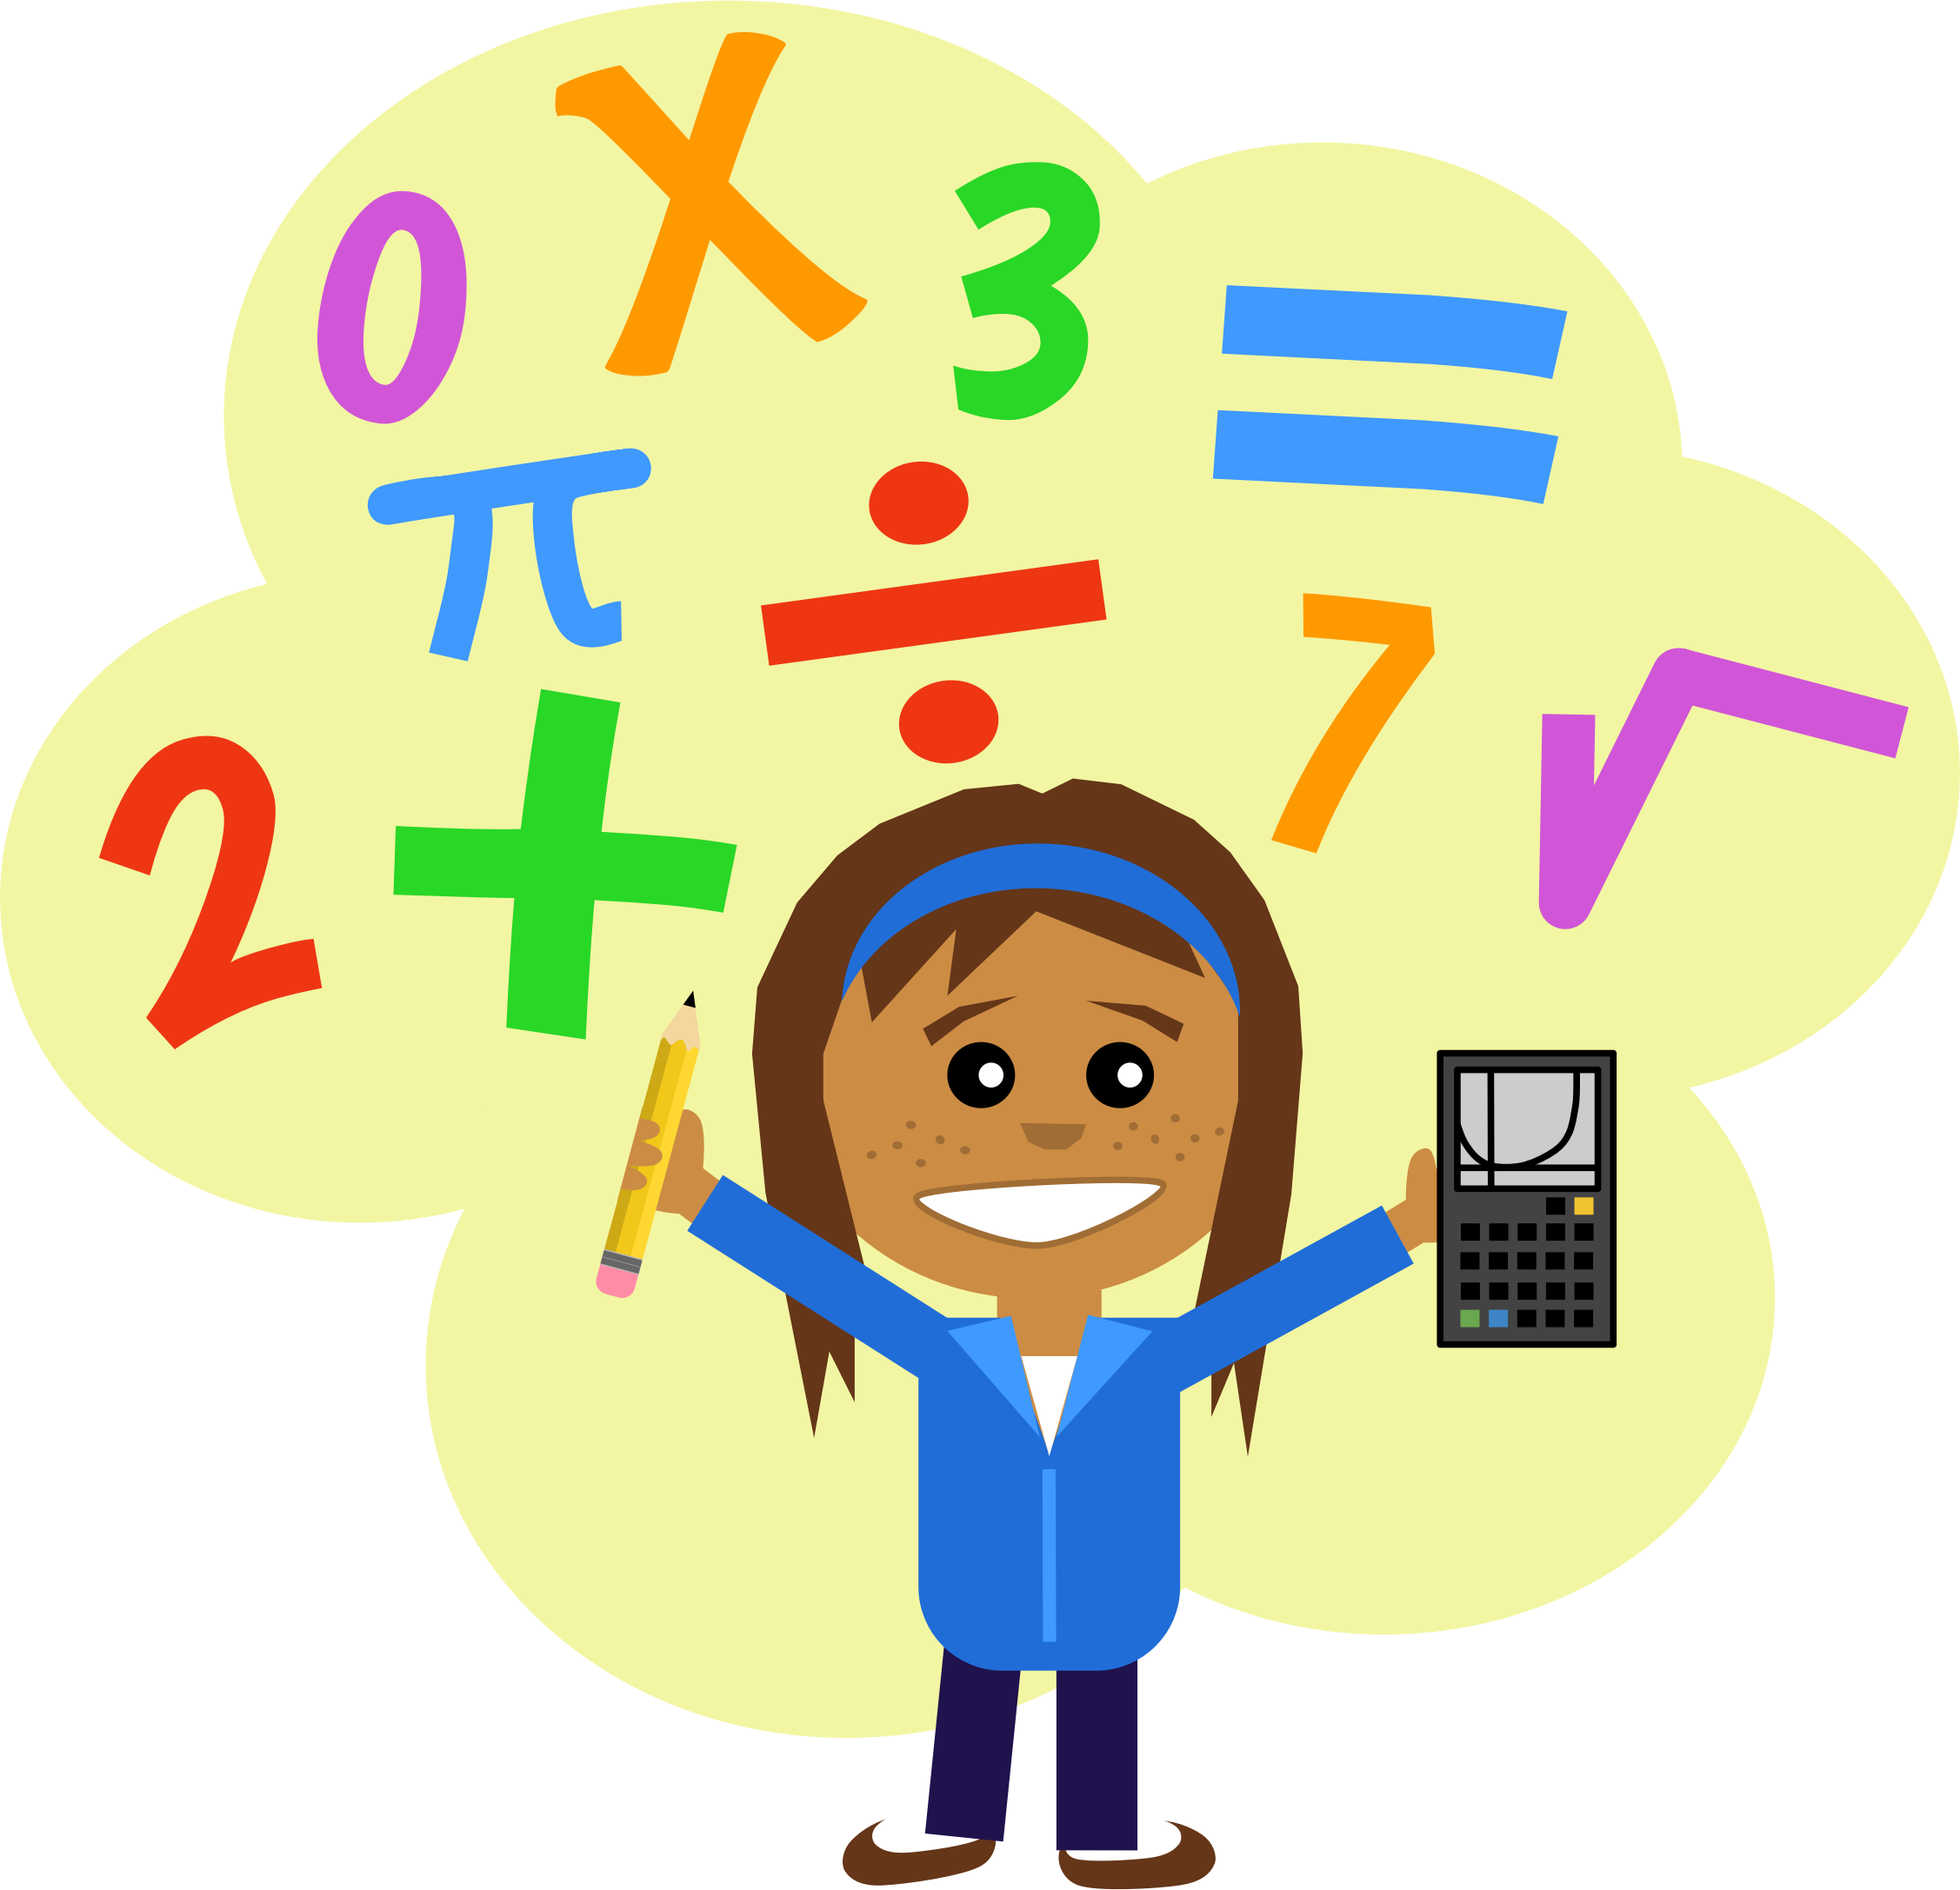 Girl big image png. People clipart math